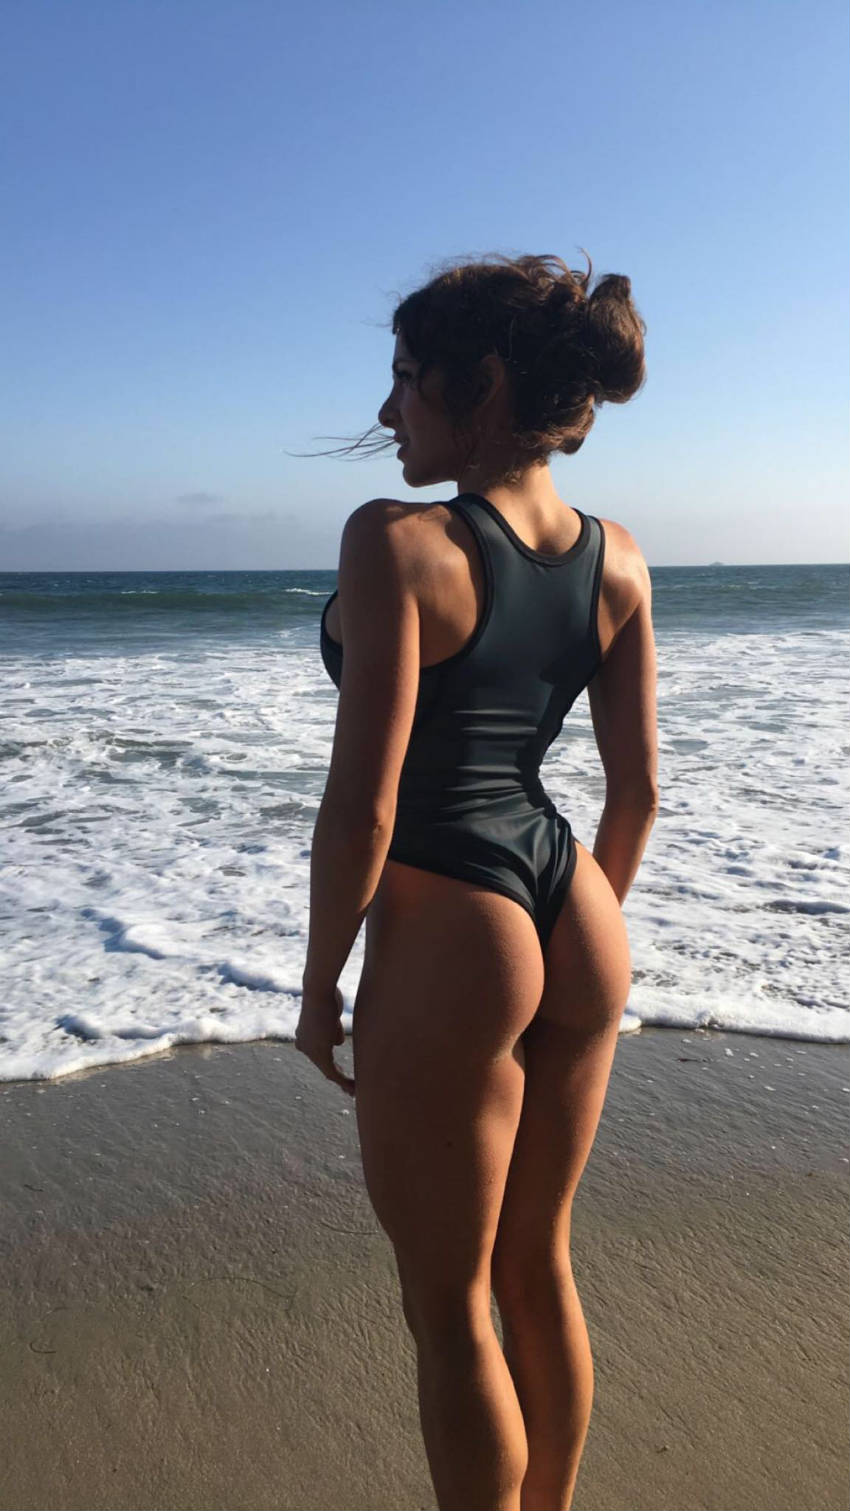 Courtney King syanding on the beach, showing off her toned glutes